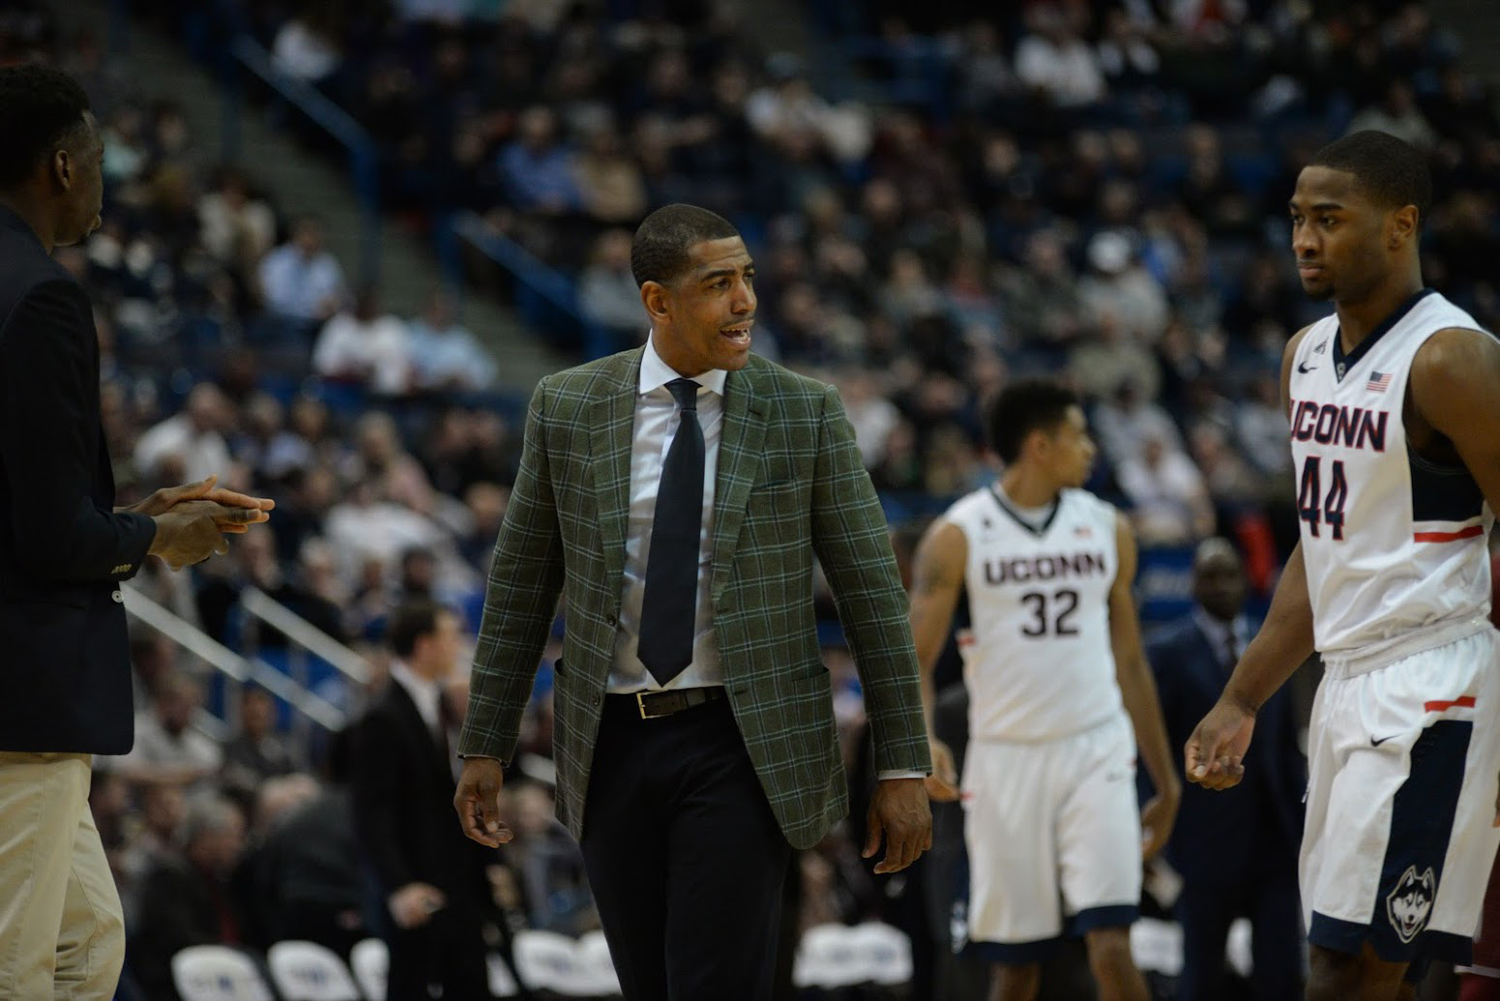 UConn men's basketball head coach Kevin Ollie, pictured at a game against Temple during the 2015-2016 season, has secured another commitment for the Class of 2017. Forward Tyler Polley announced his commitment to the Huskies via his Twitter account, propelling UConn's recruiting class from 24th overall to No. 7. (File Photo/The Daily Campus).